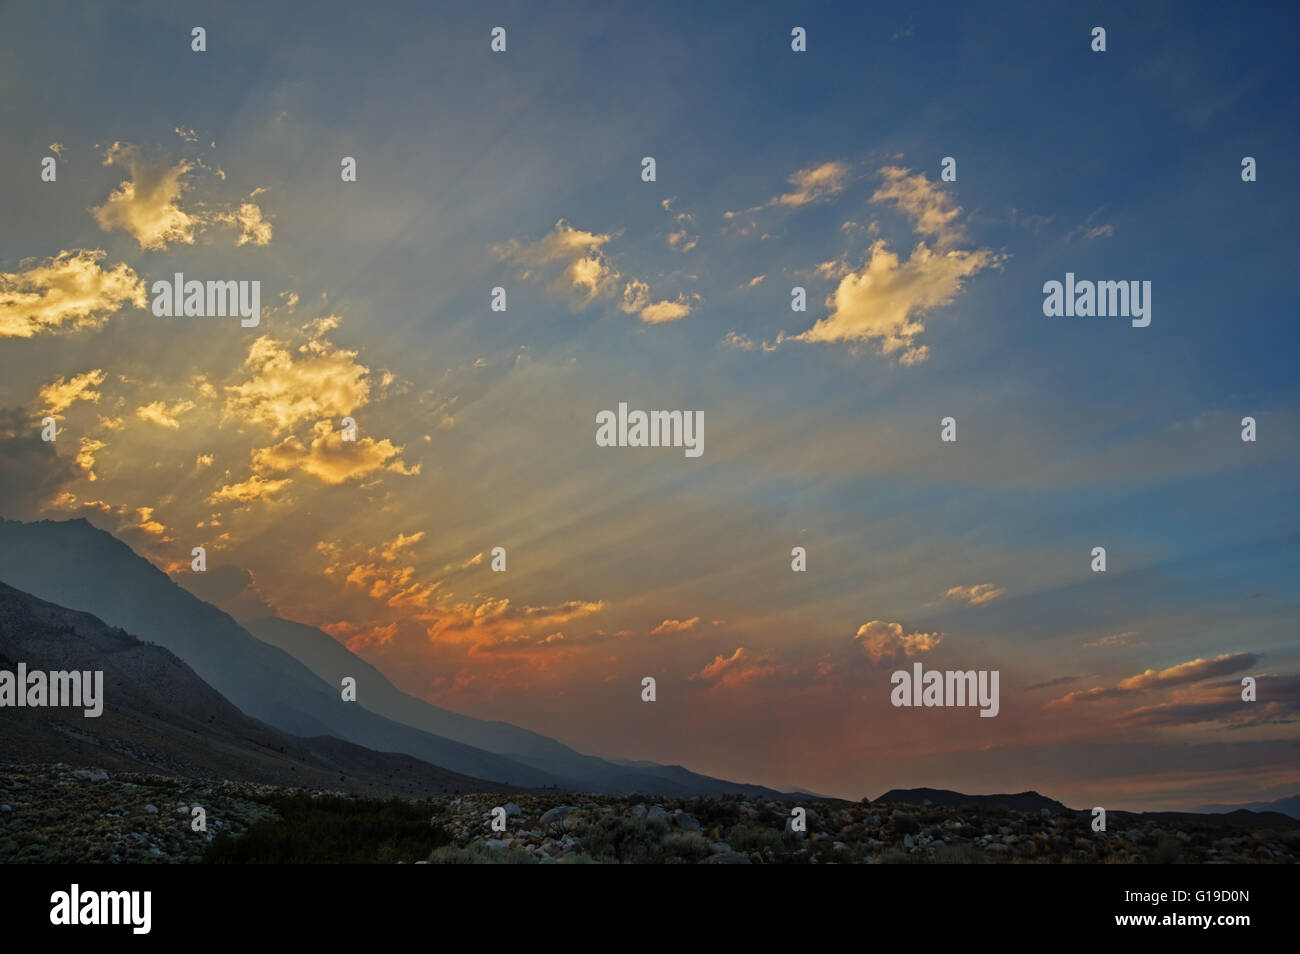 a smoky mountain sunset with sunrays spreading out over the valley - Stock Image